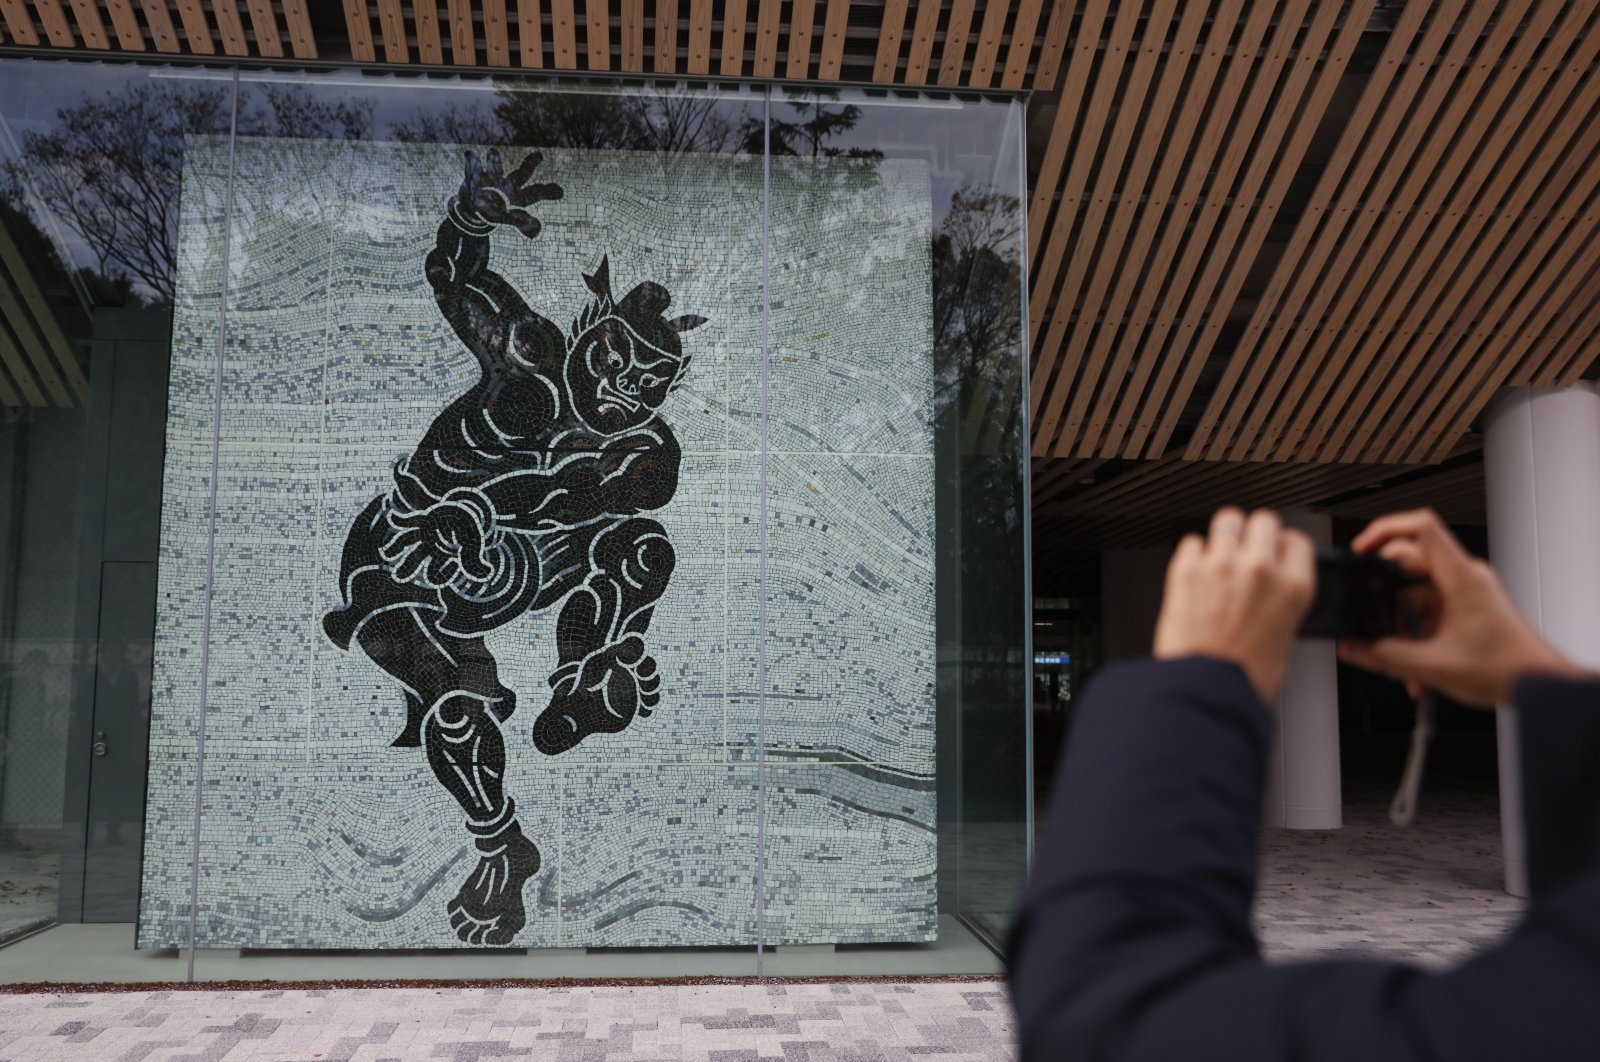 A man takes pictures of a mosaic-tile mural depicting legendary sumo wrestler, Nomino Sukune, at the new National Stadium Sunday, Dec. 15, 2019, in Tokyo. (AP Photo)